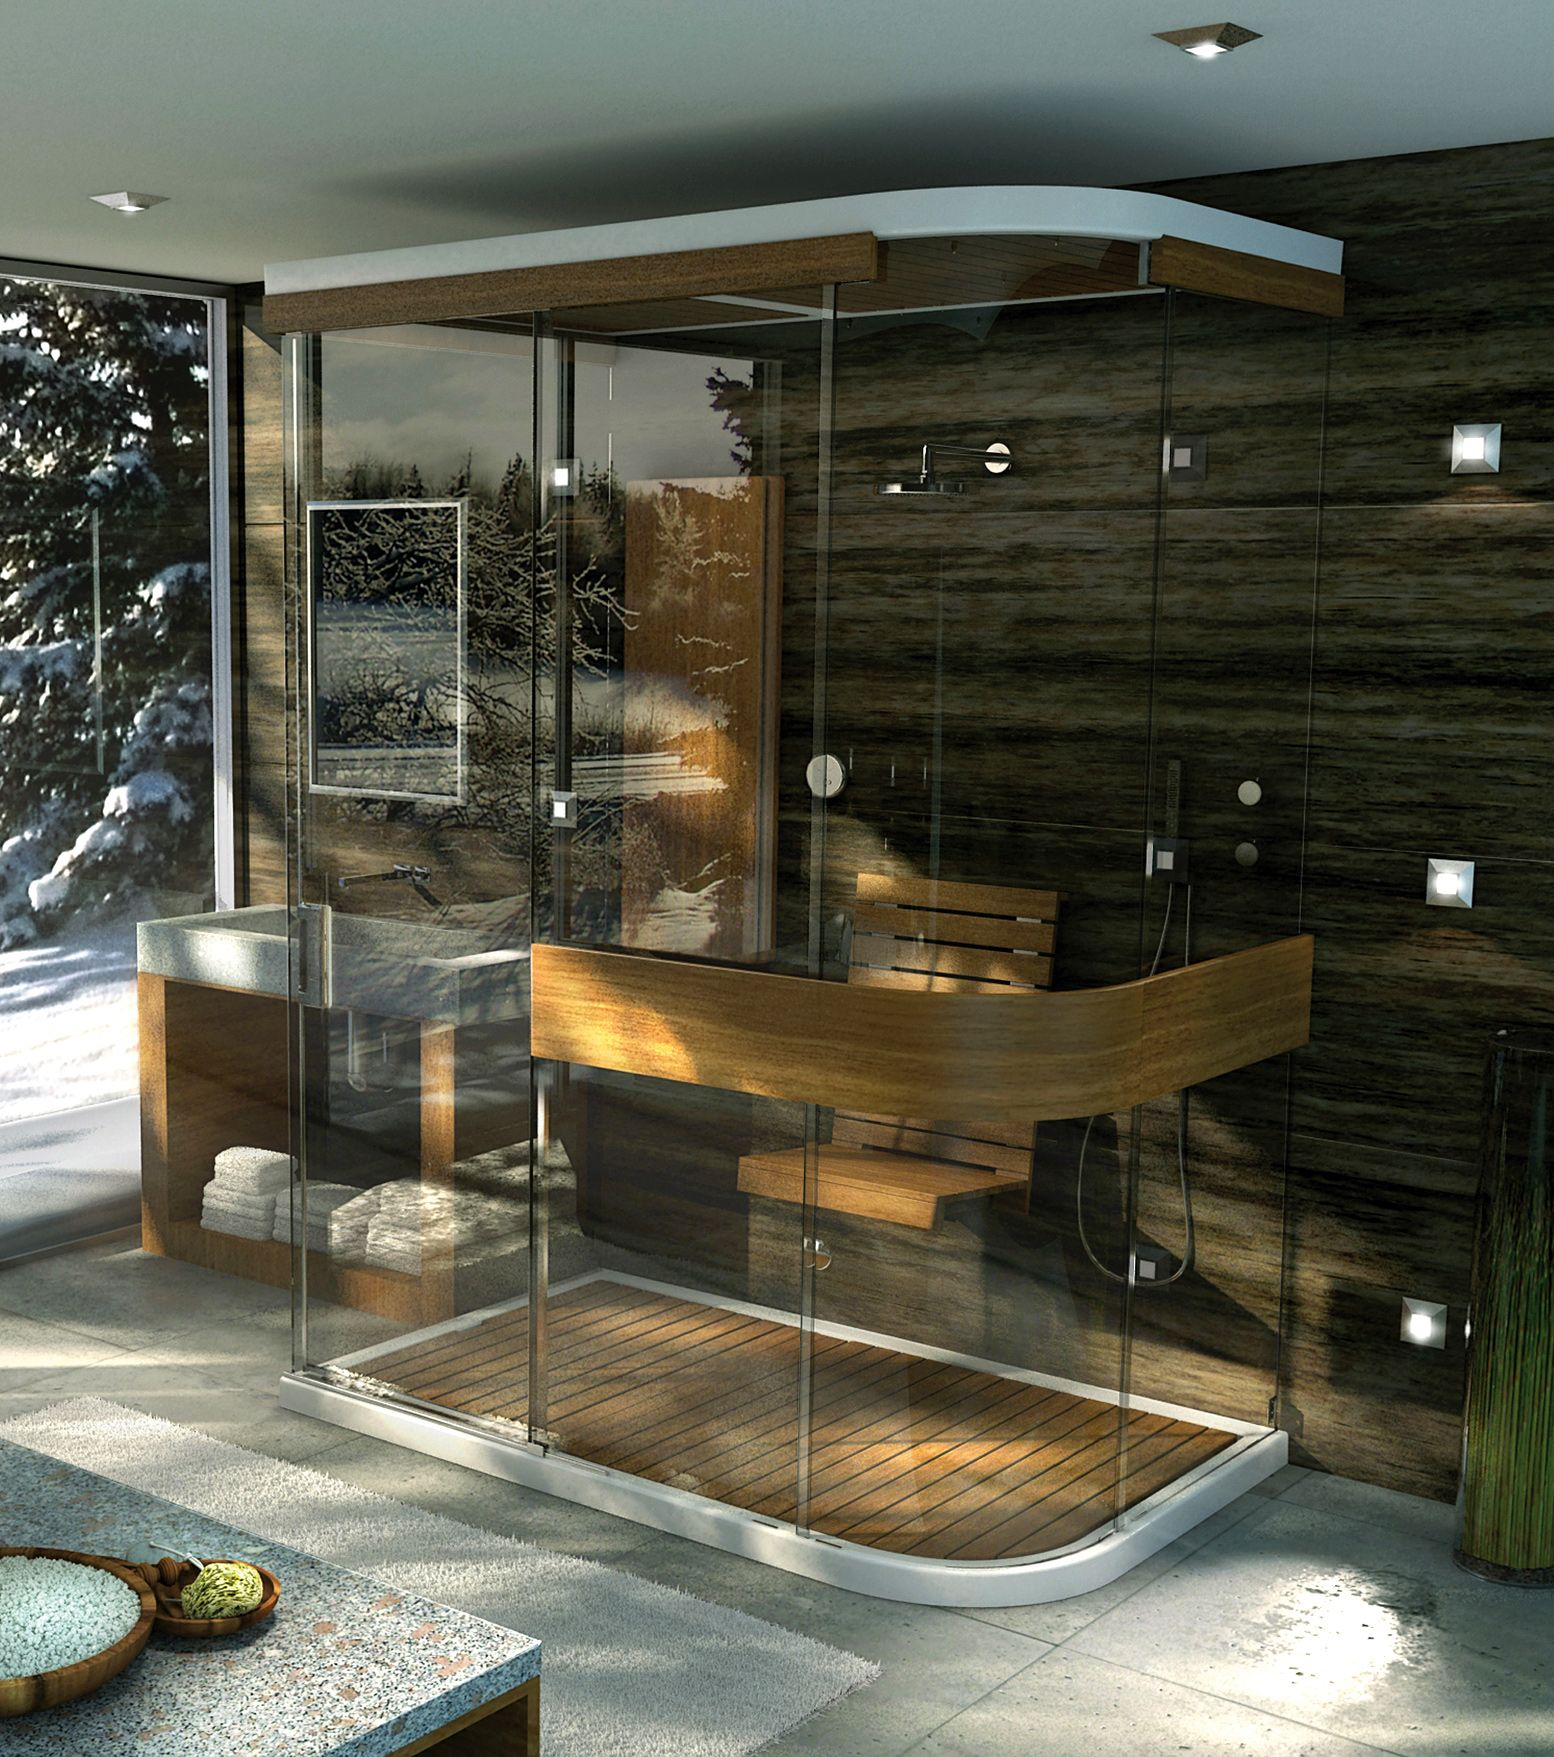 Exposé 6642 M Glass enclosures or Wall-mounted shower - MAAX ...